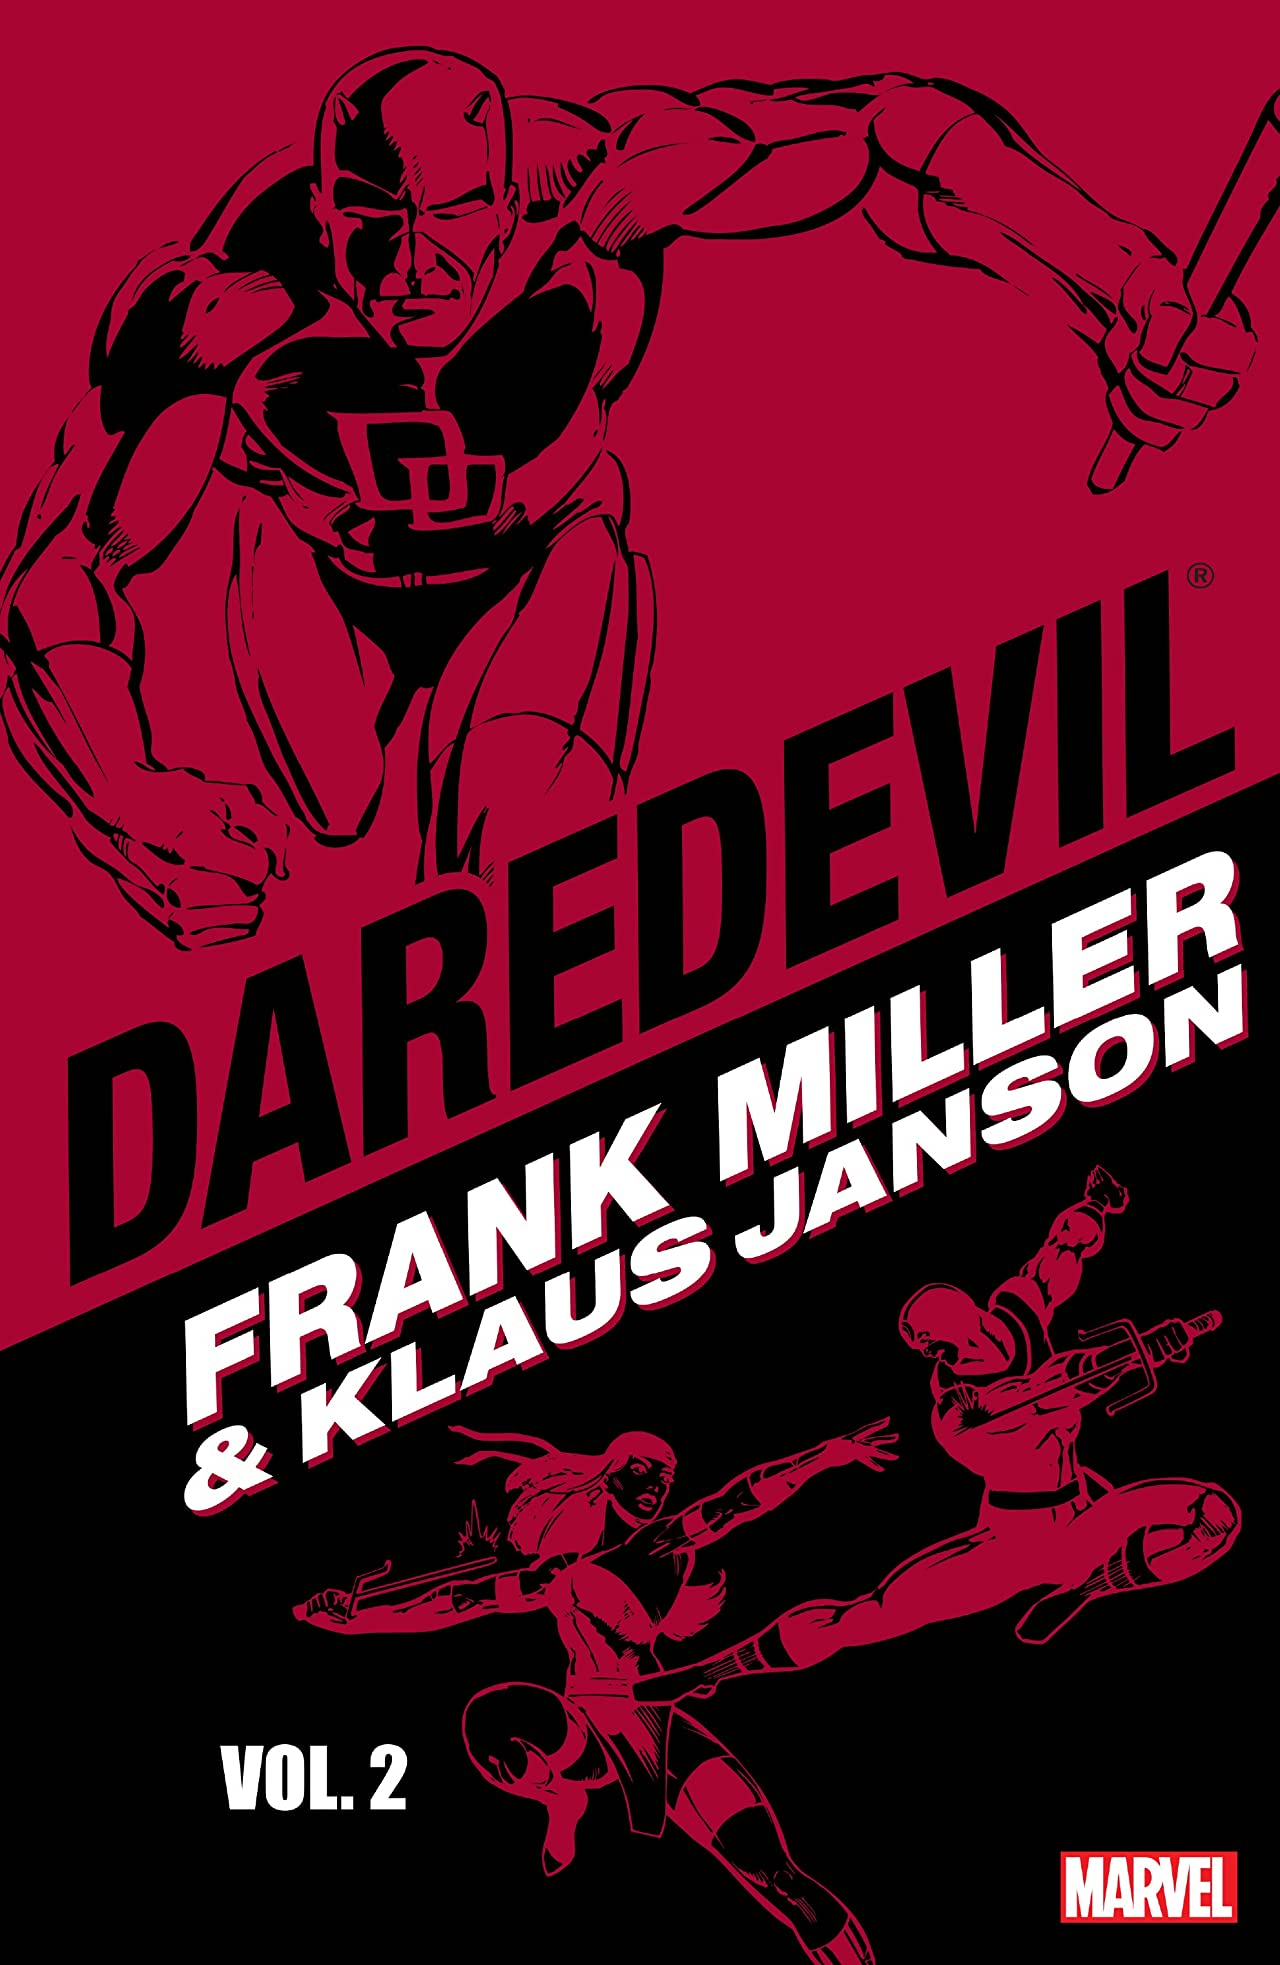 Daredevil by Frank Miller and Klaus Janson Vol. 2